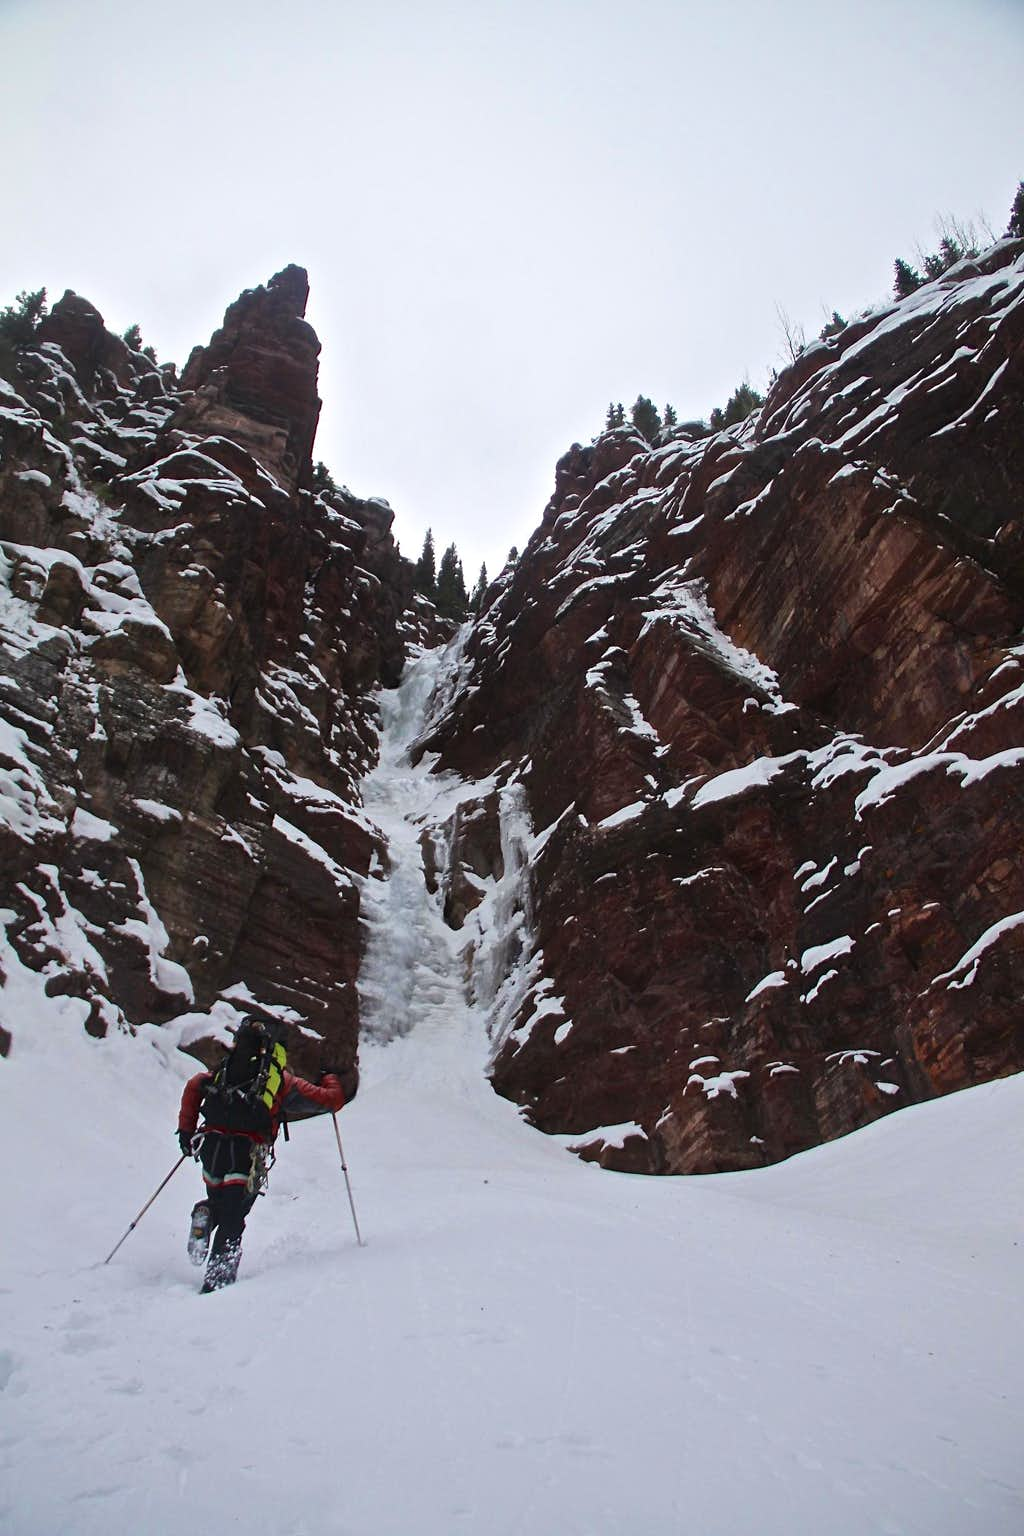 Approach to Campground Couloir